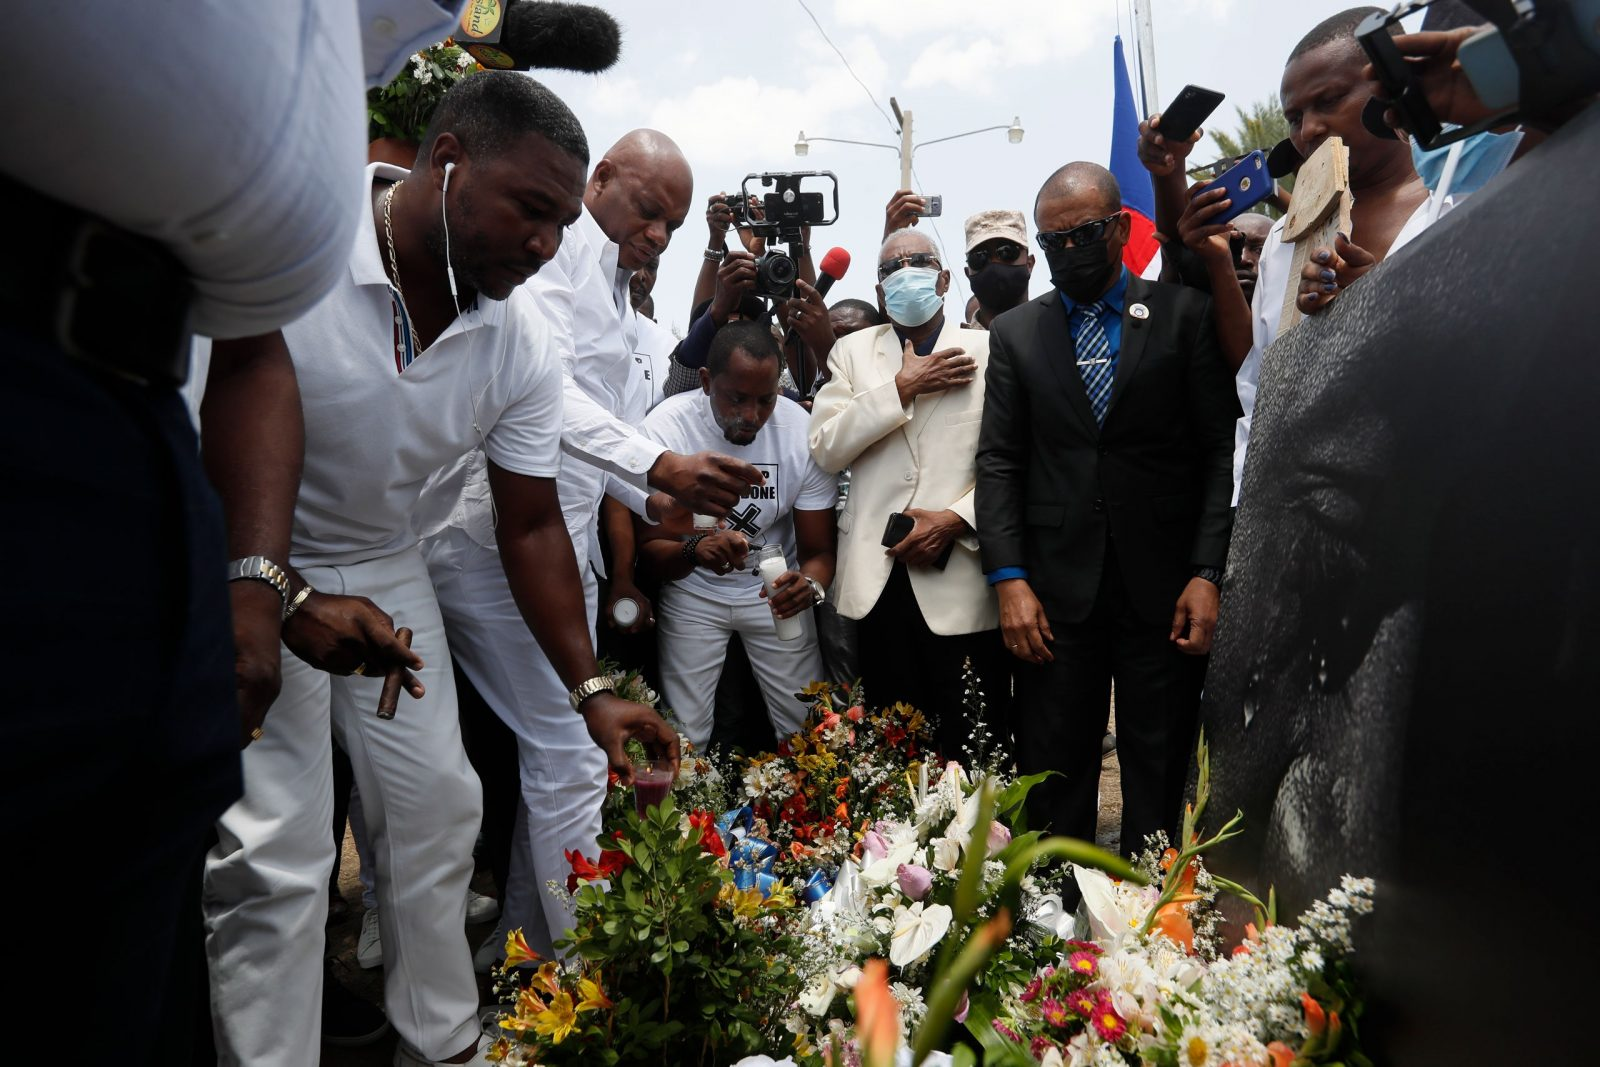 Trouble in Haiti Part 1: The Assassination of President Moise